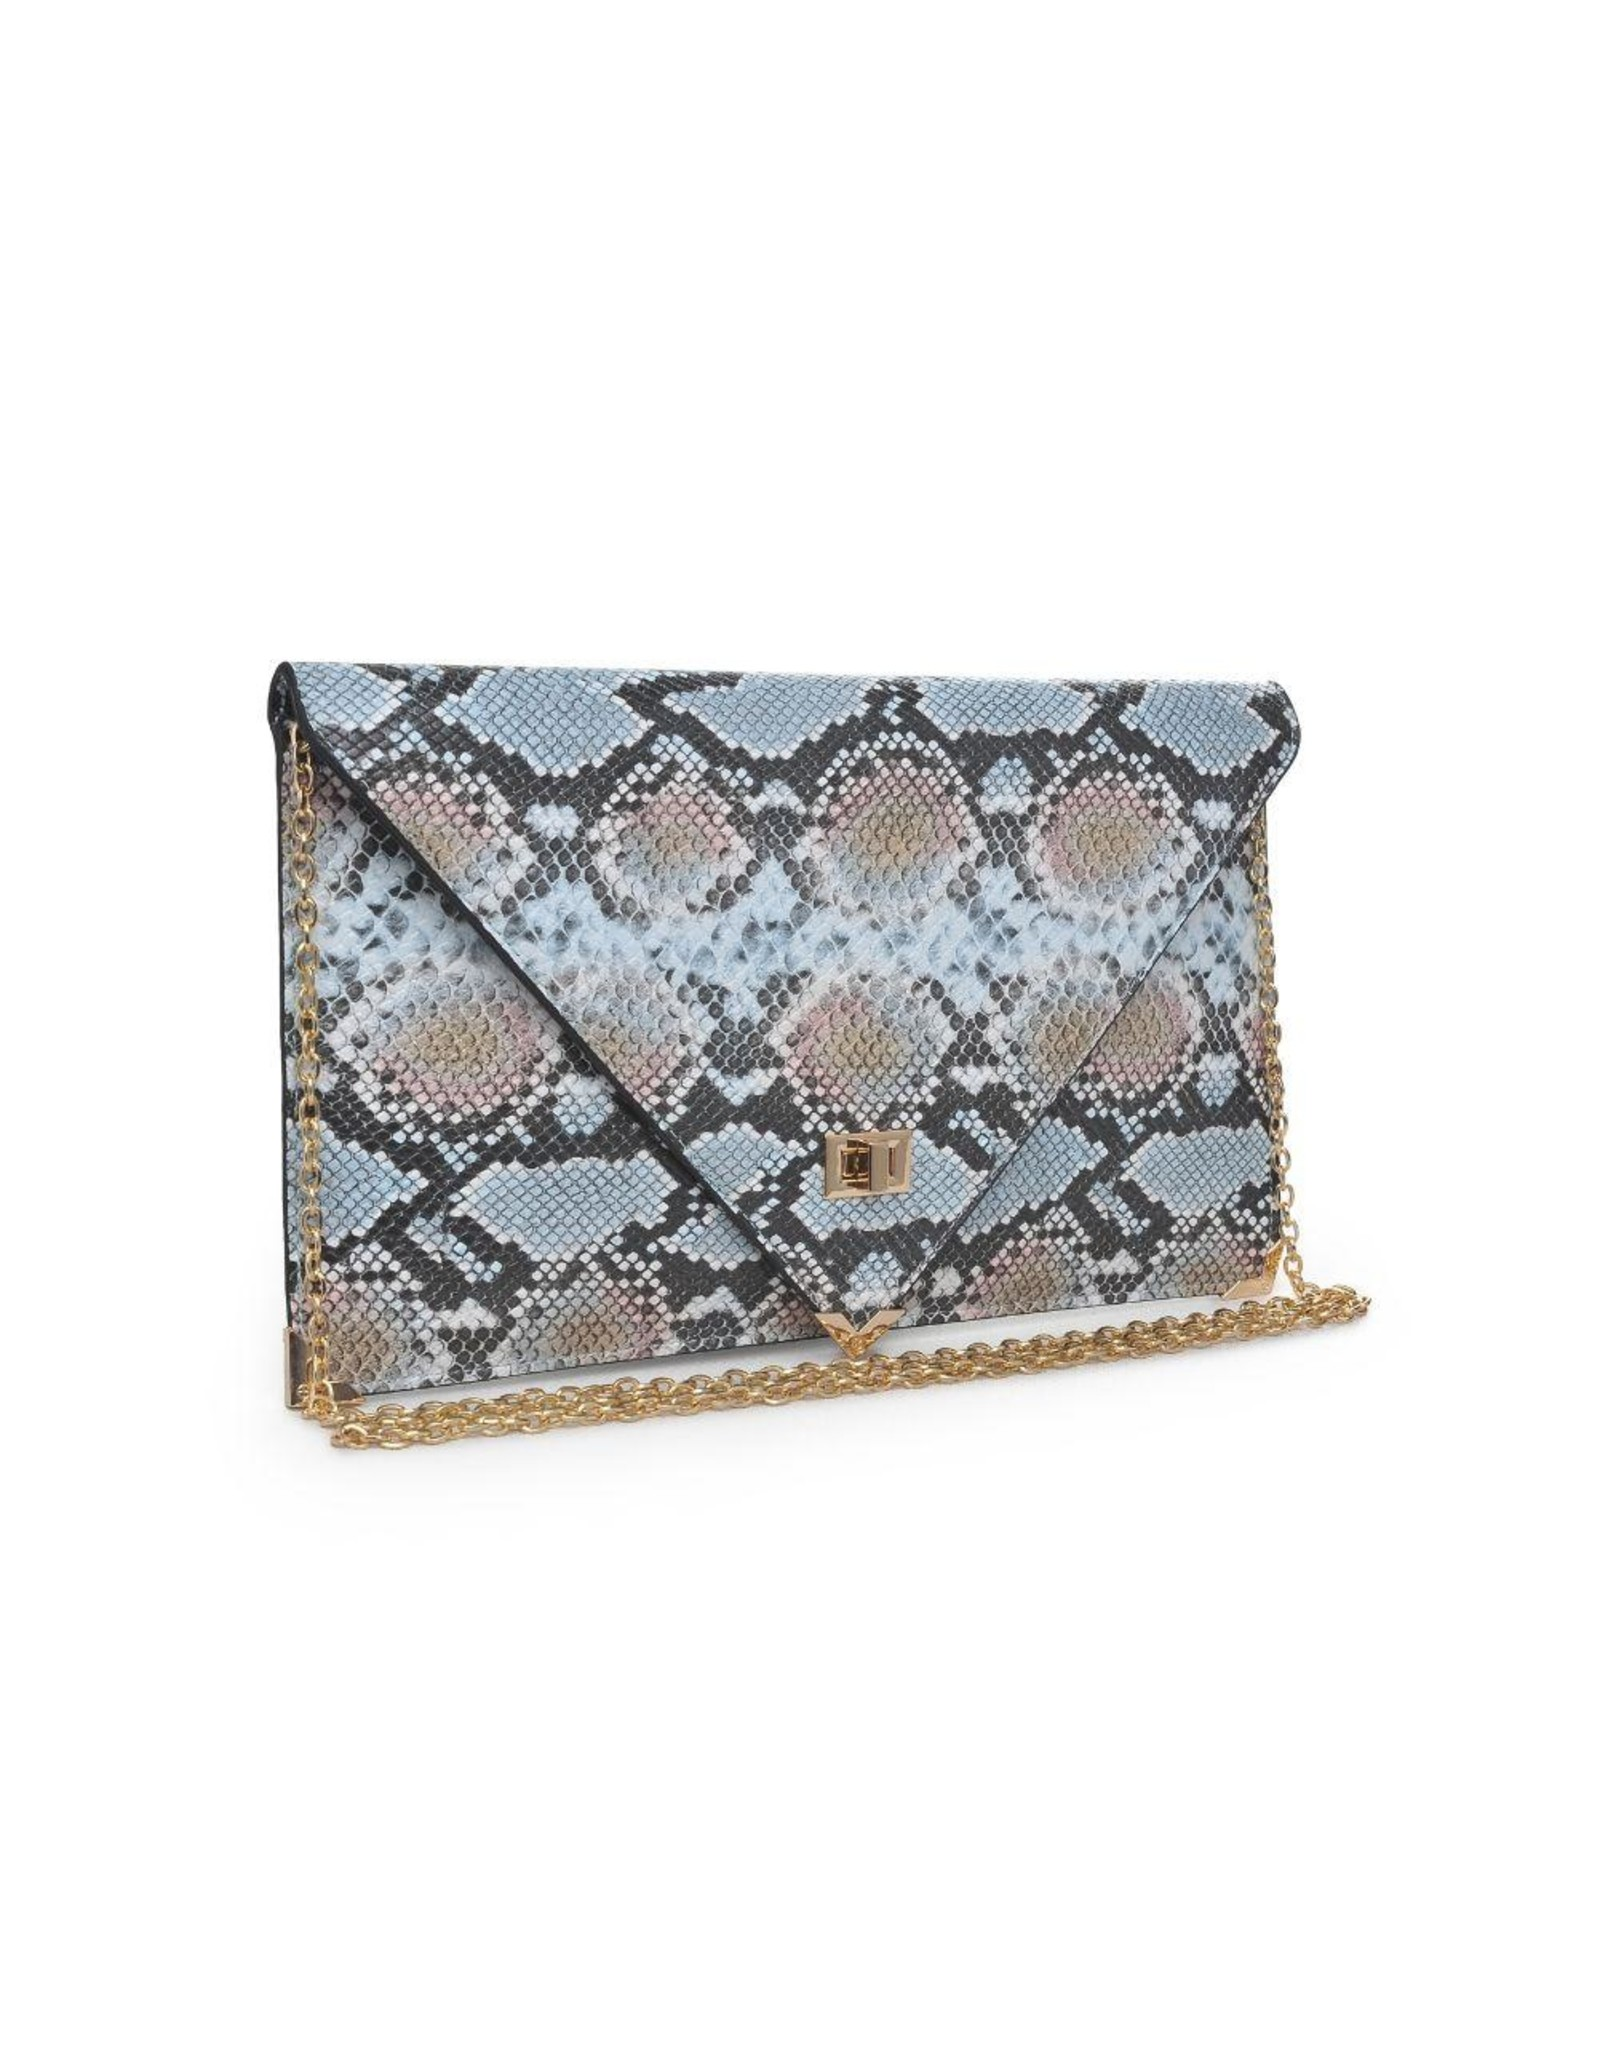 Cally Snake Skin Crossbody Bag - Blue